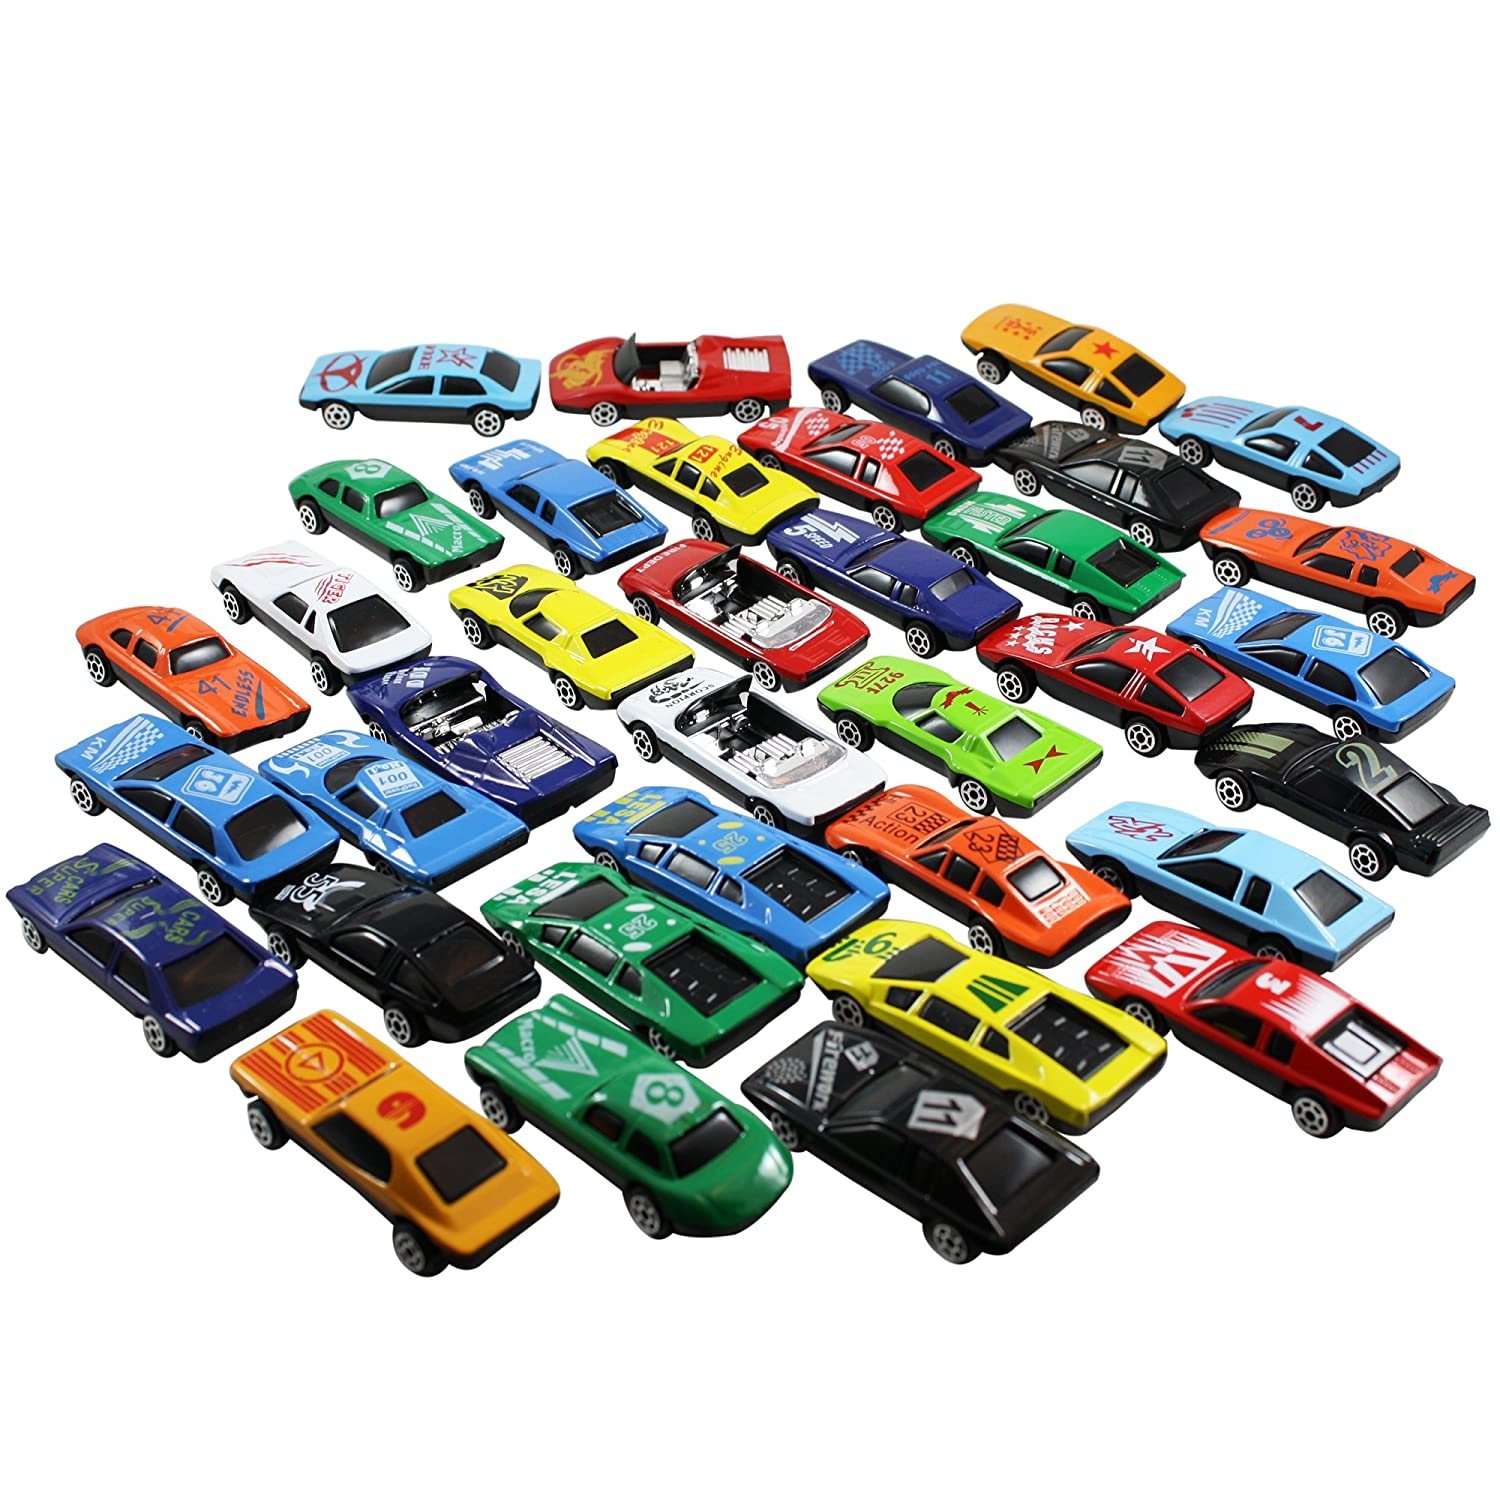 amazoncom race car toys assorted for kids boys or girls free wheeling die cast metal plastic toy cars set of 36 numbered vehicles convertibles great